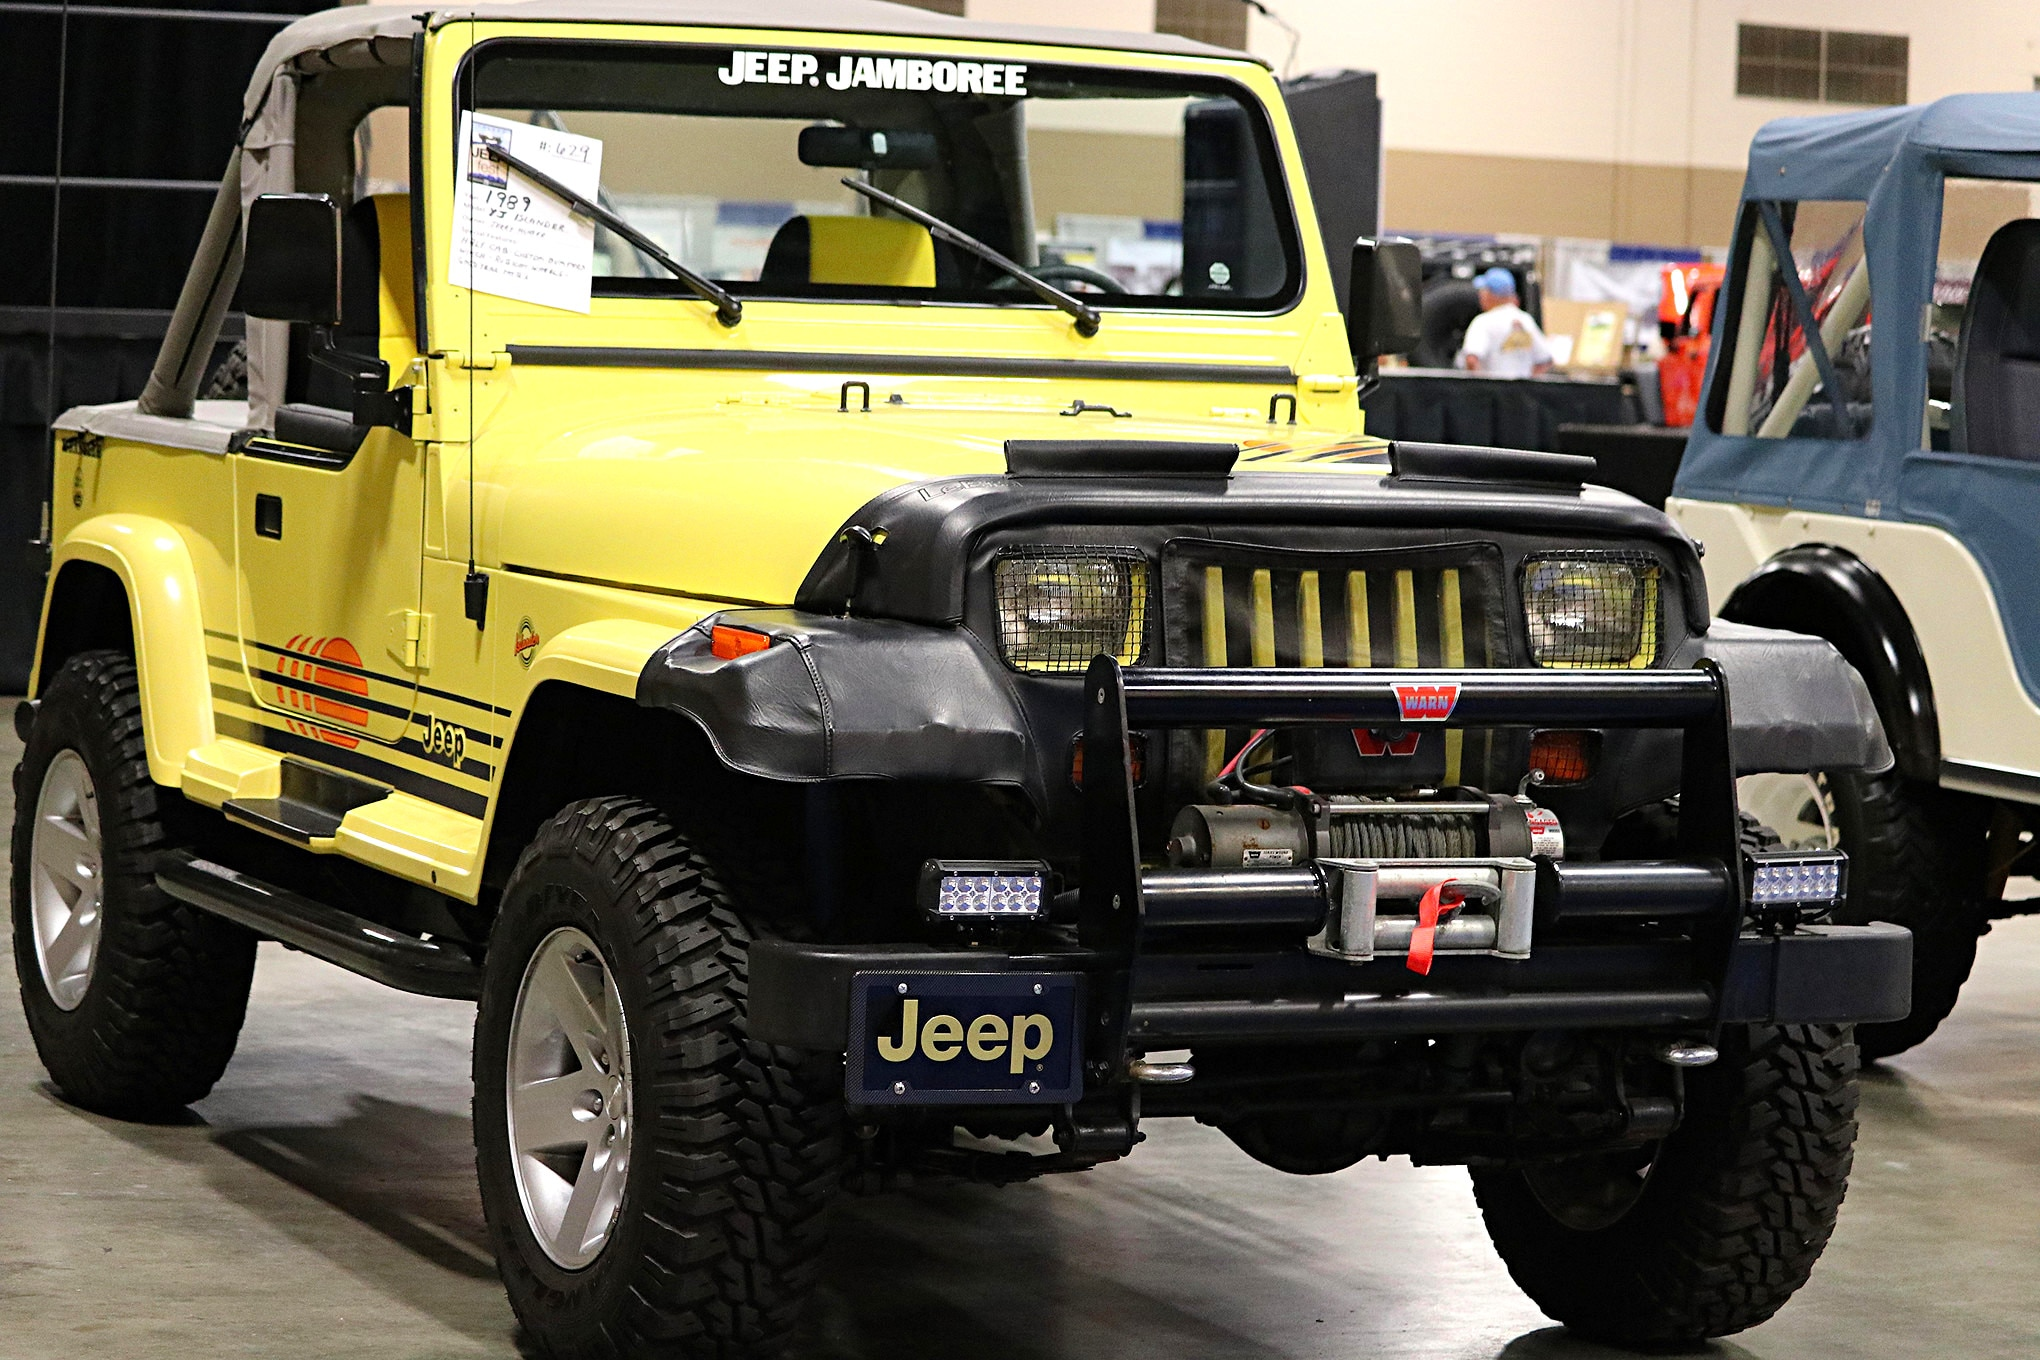 medium resolution of former toledo plant manager jerry huber brought this 89 jeep yj islander to the show seen here with a half cab huber has added custom bumpers